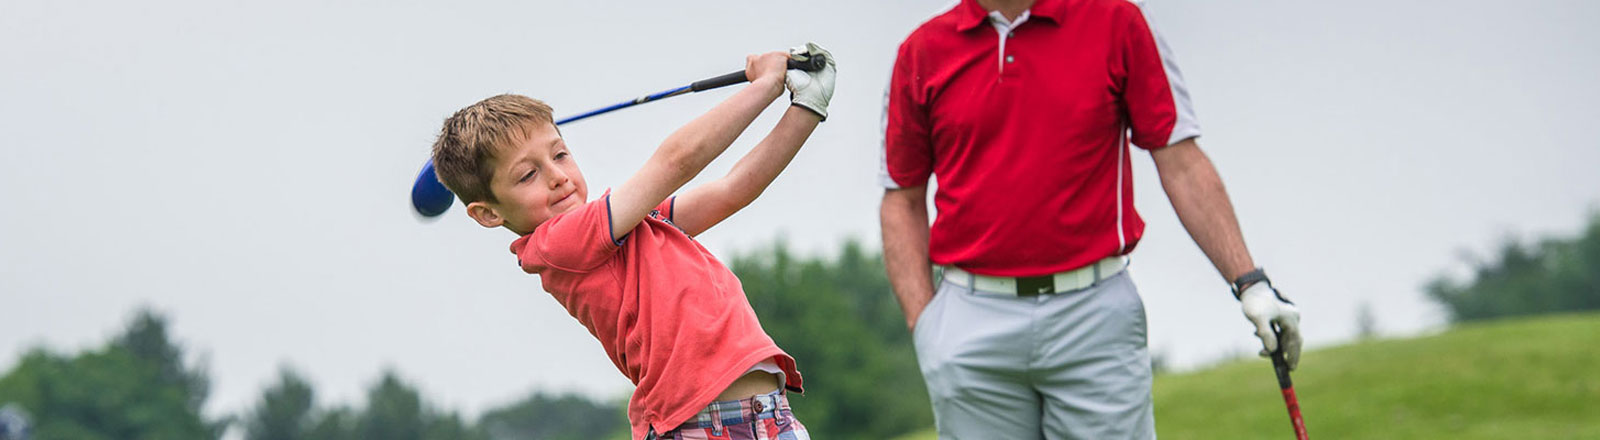 Golf boy swing in pink top